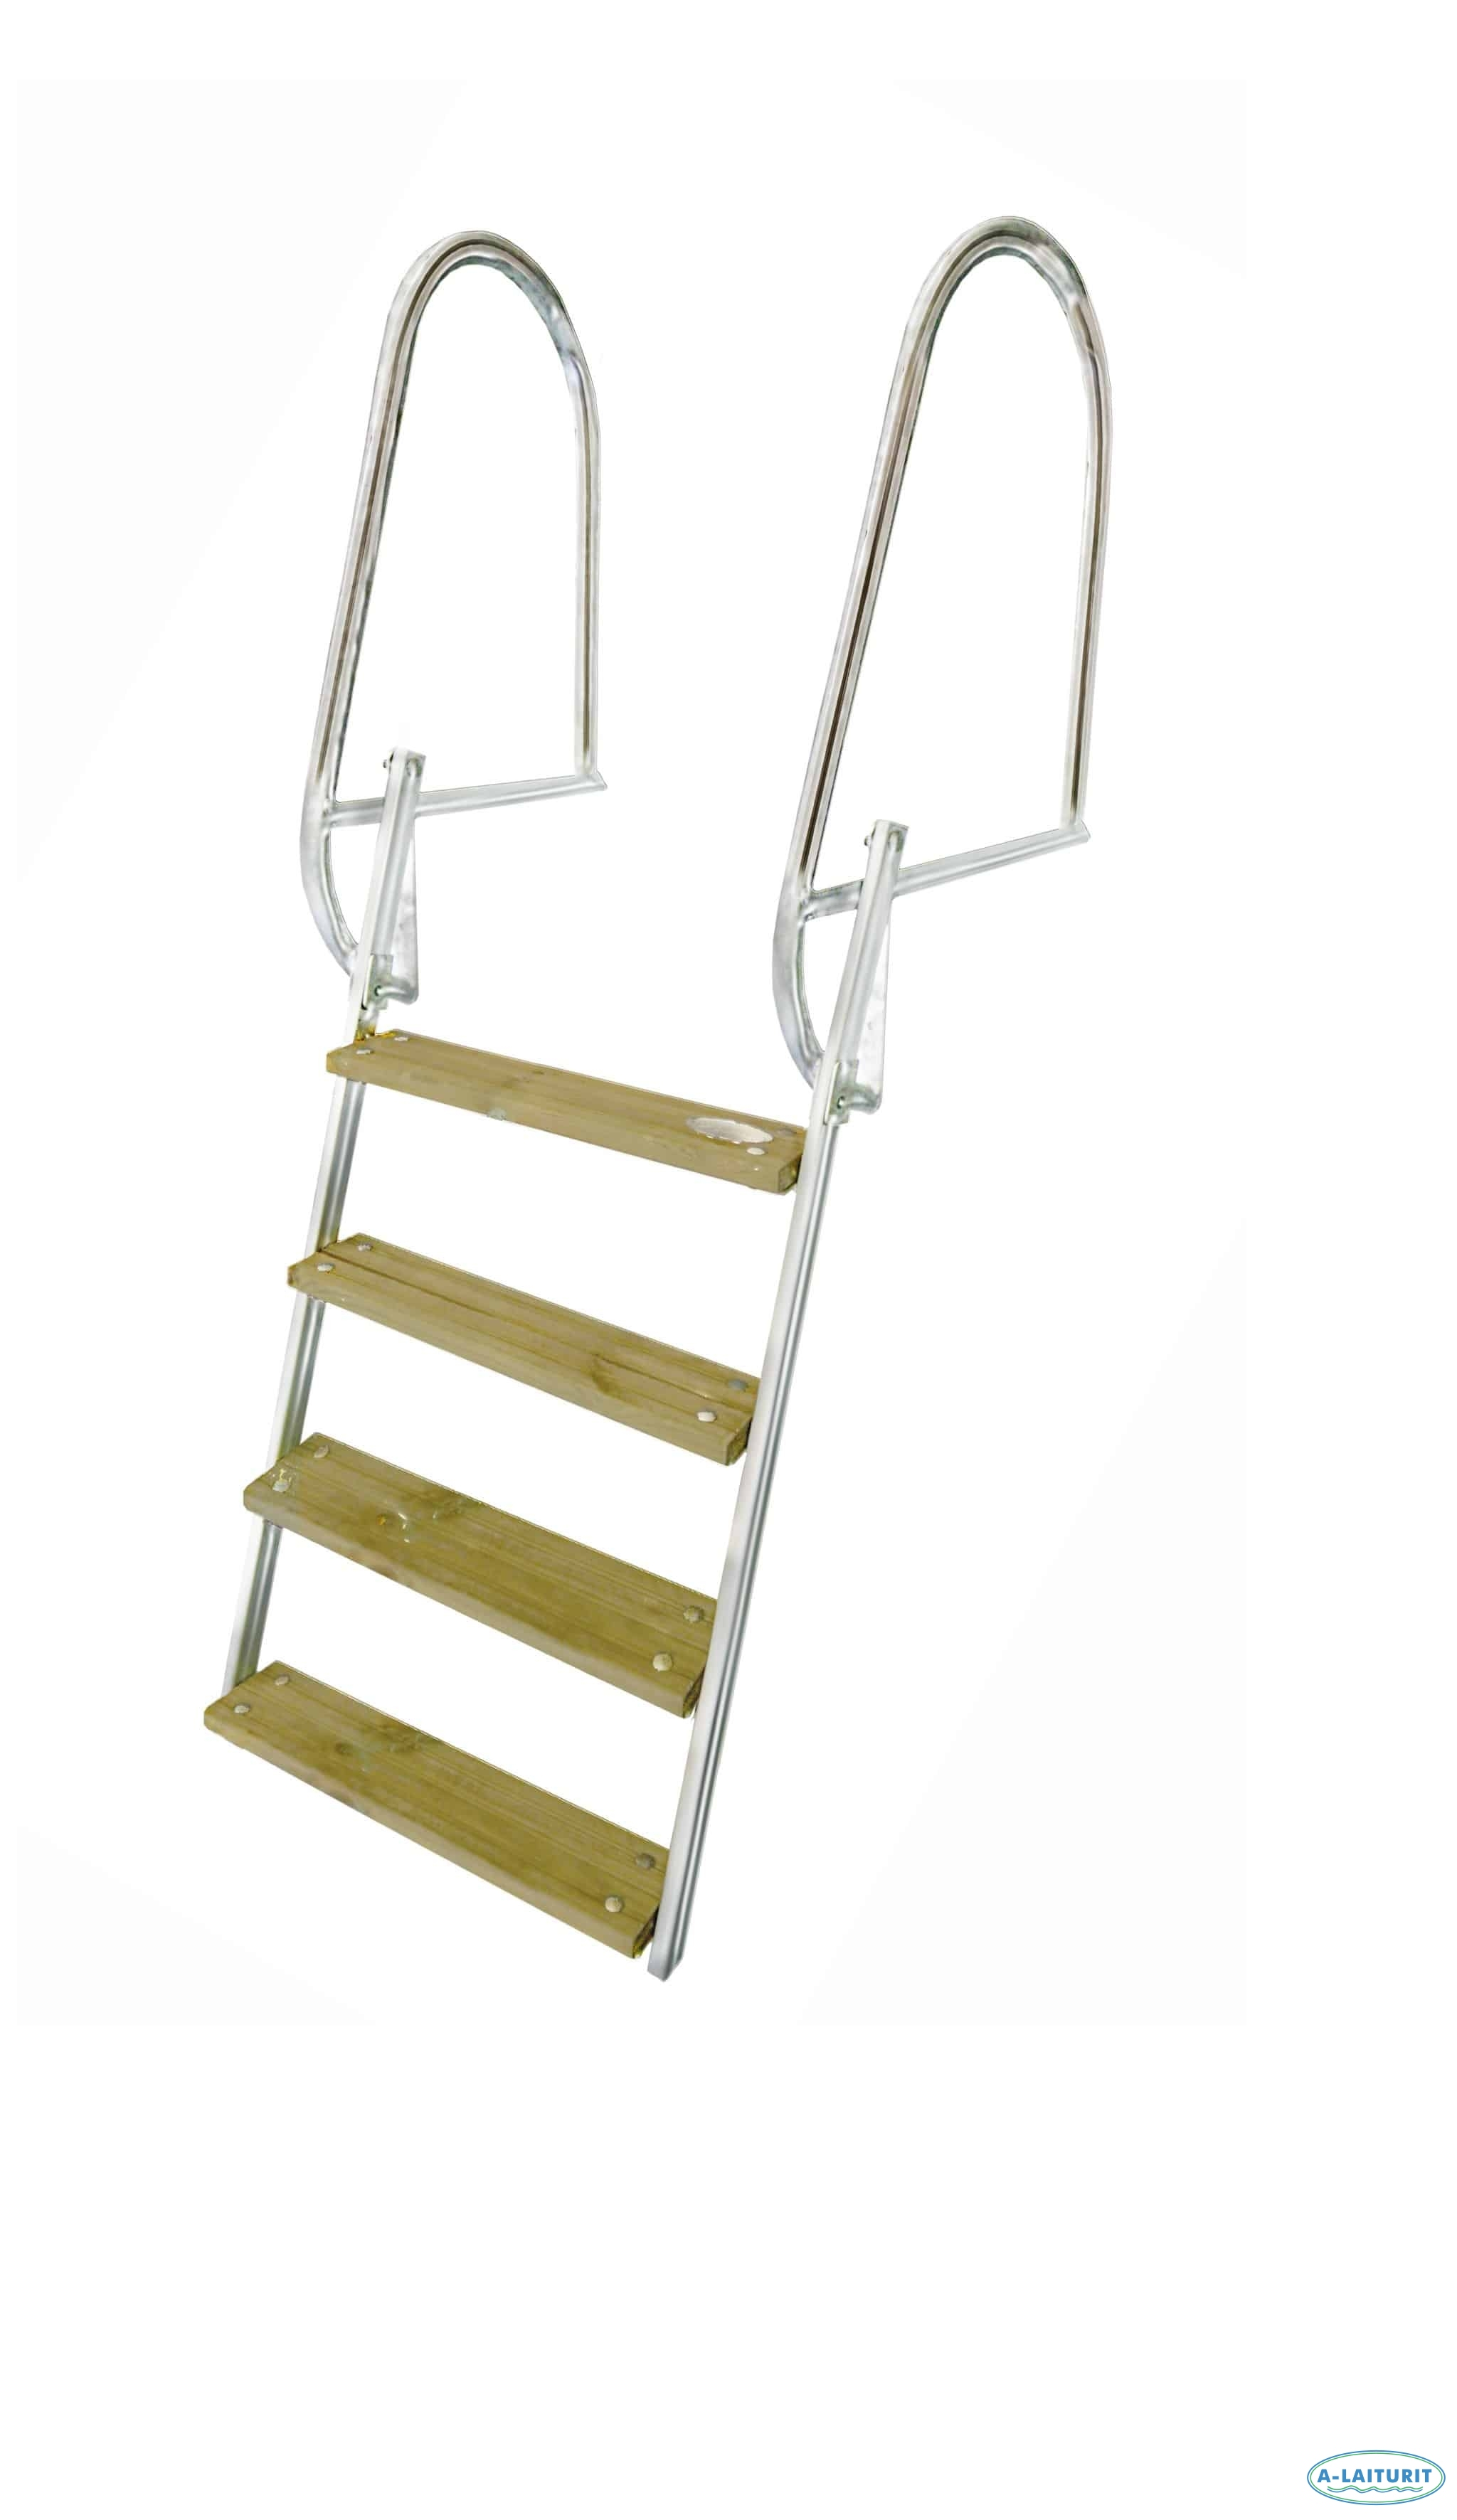 Swimming ladder SS collapsible short 100 cm, 4 steps